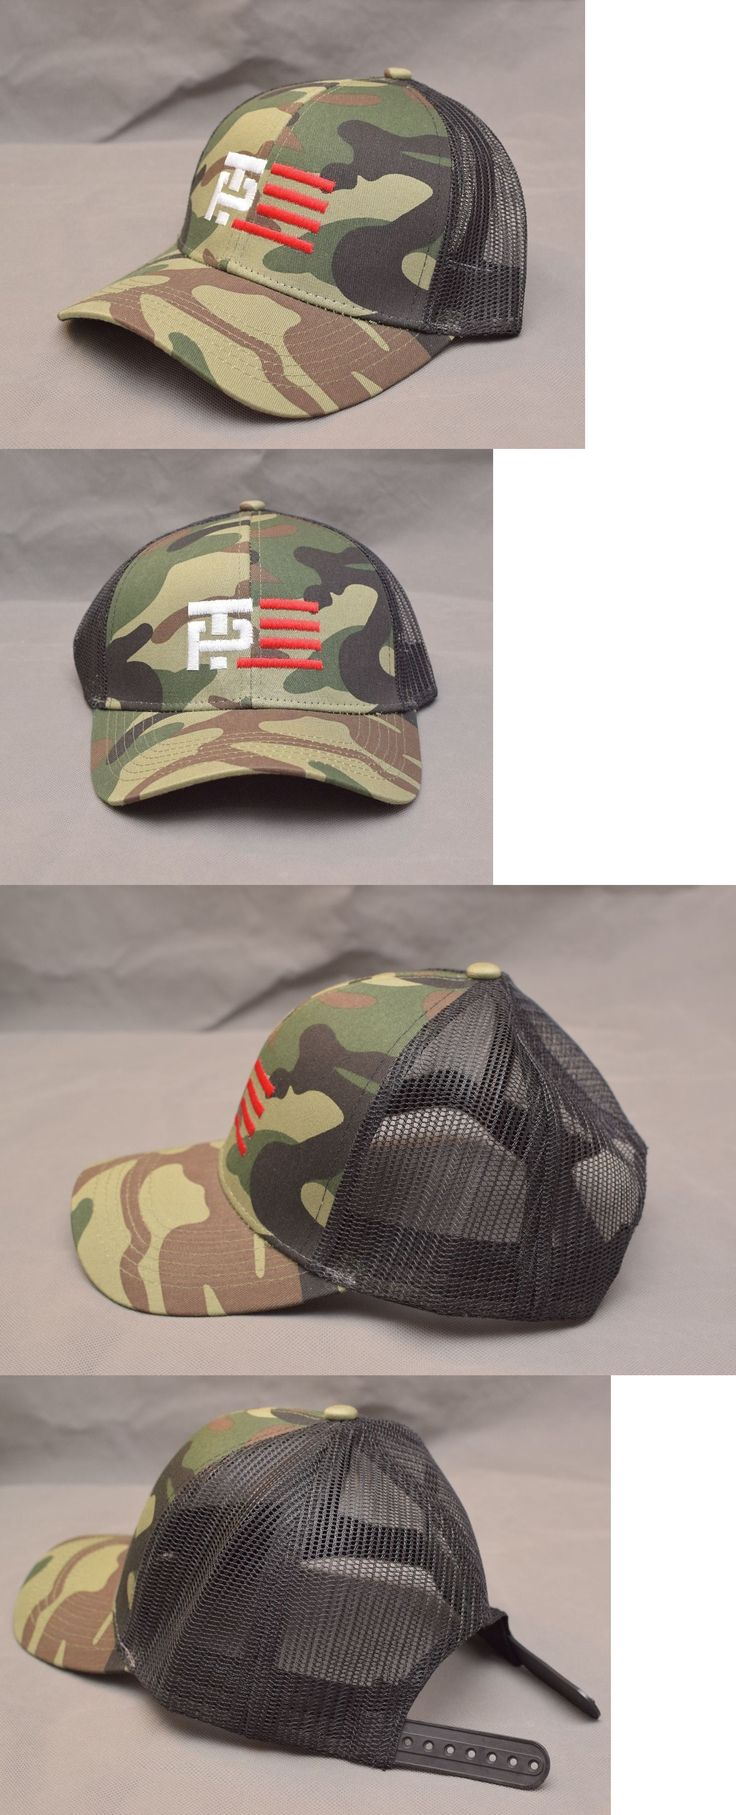 donald trump: Make America Great Again-Donald Trump Hat Republican 2016- Tp Flag Army Camo Cap -> BUY IT NOW ONLY: $2.99 on eBay!